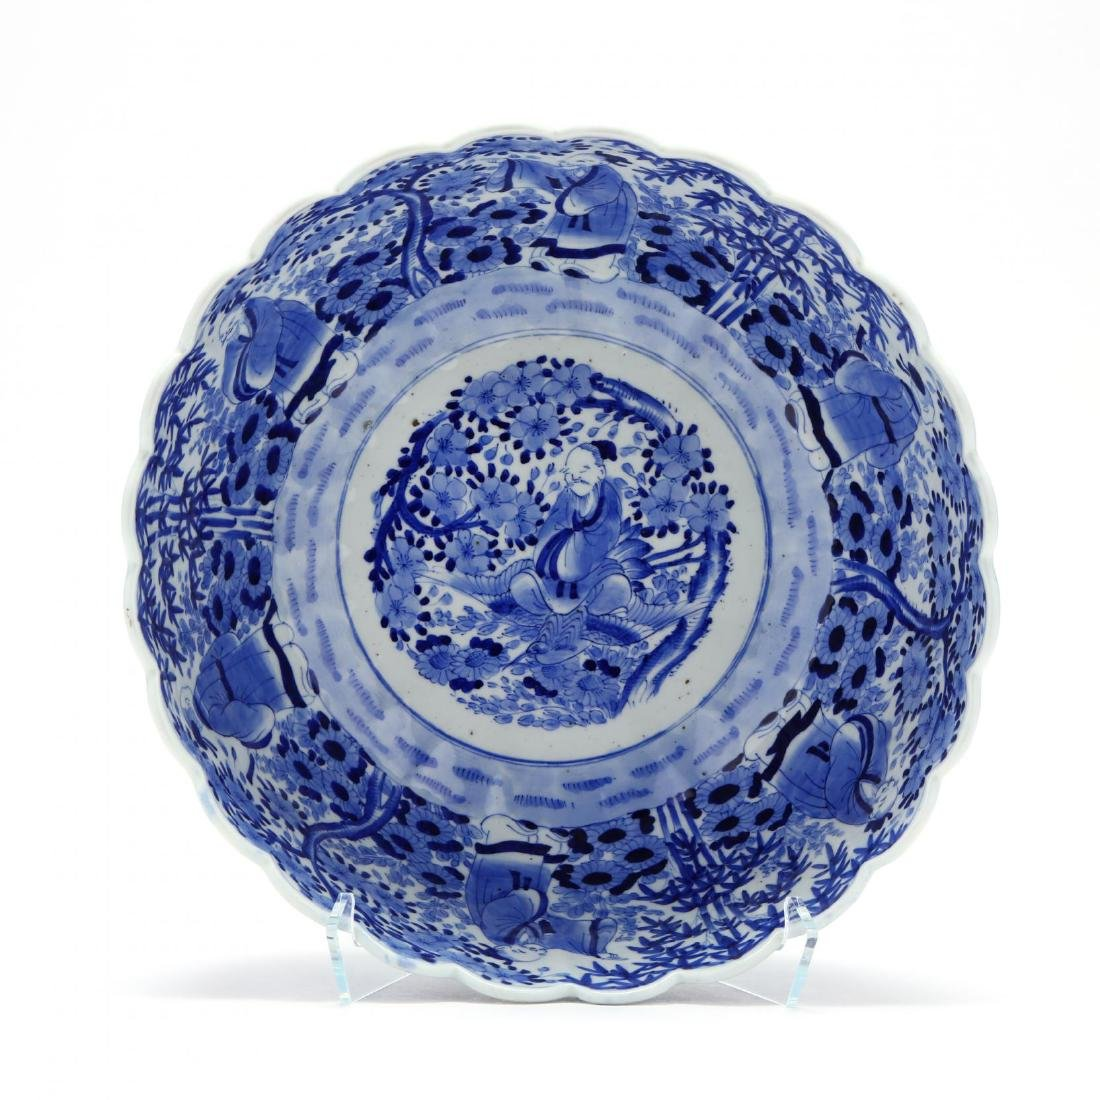 A Blue and White Punch Bowl with Scalloped Rim